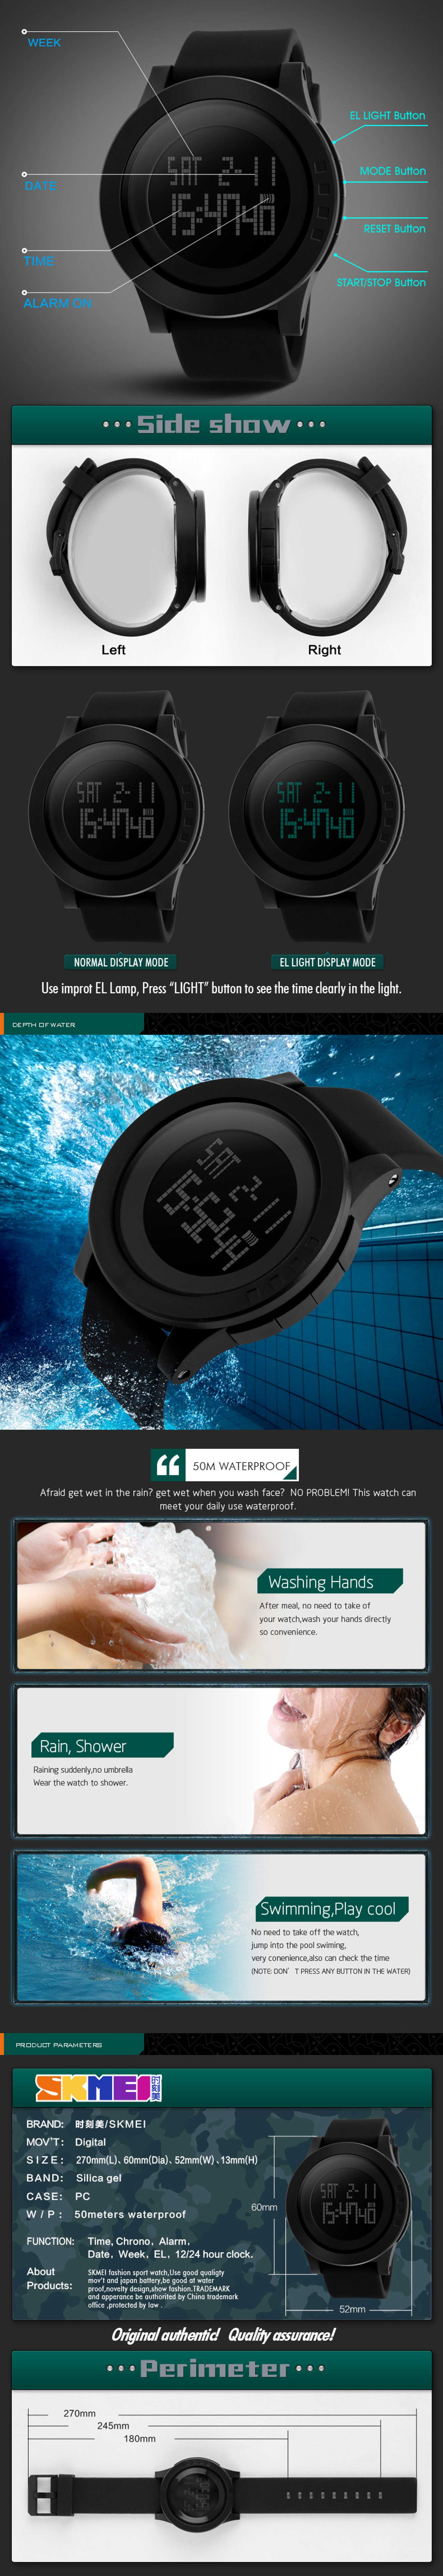 2018 hot product SKMEI merk 5ATM waterdichte Siliconen band sport digitale horloges mannen #1142